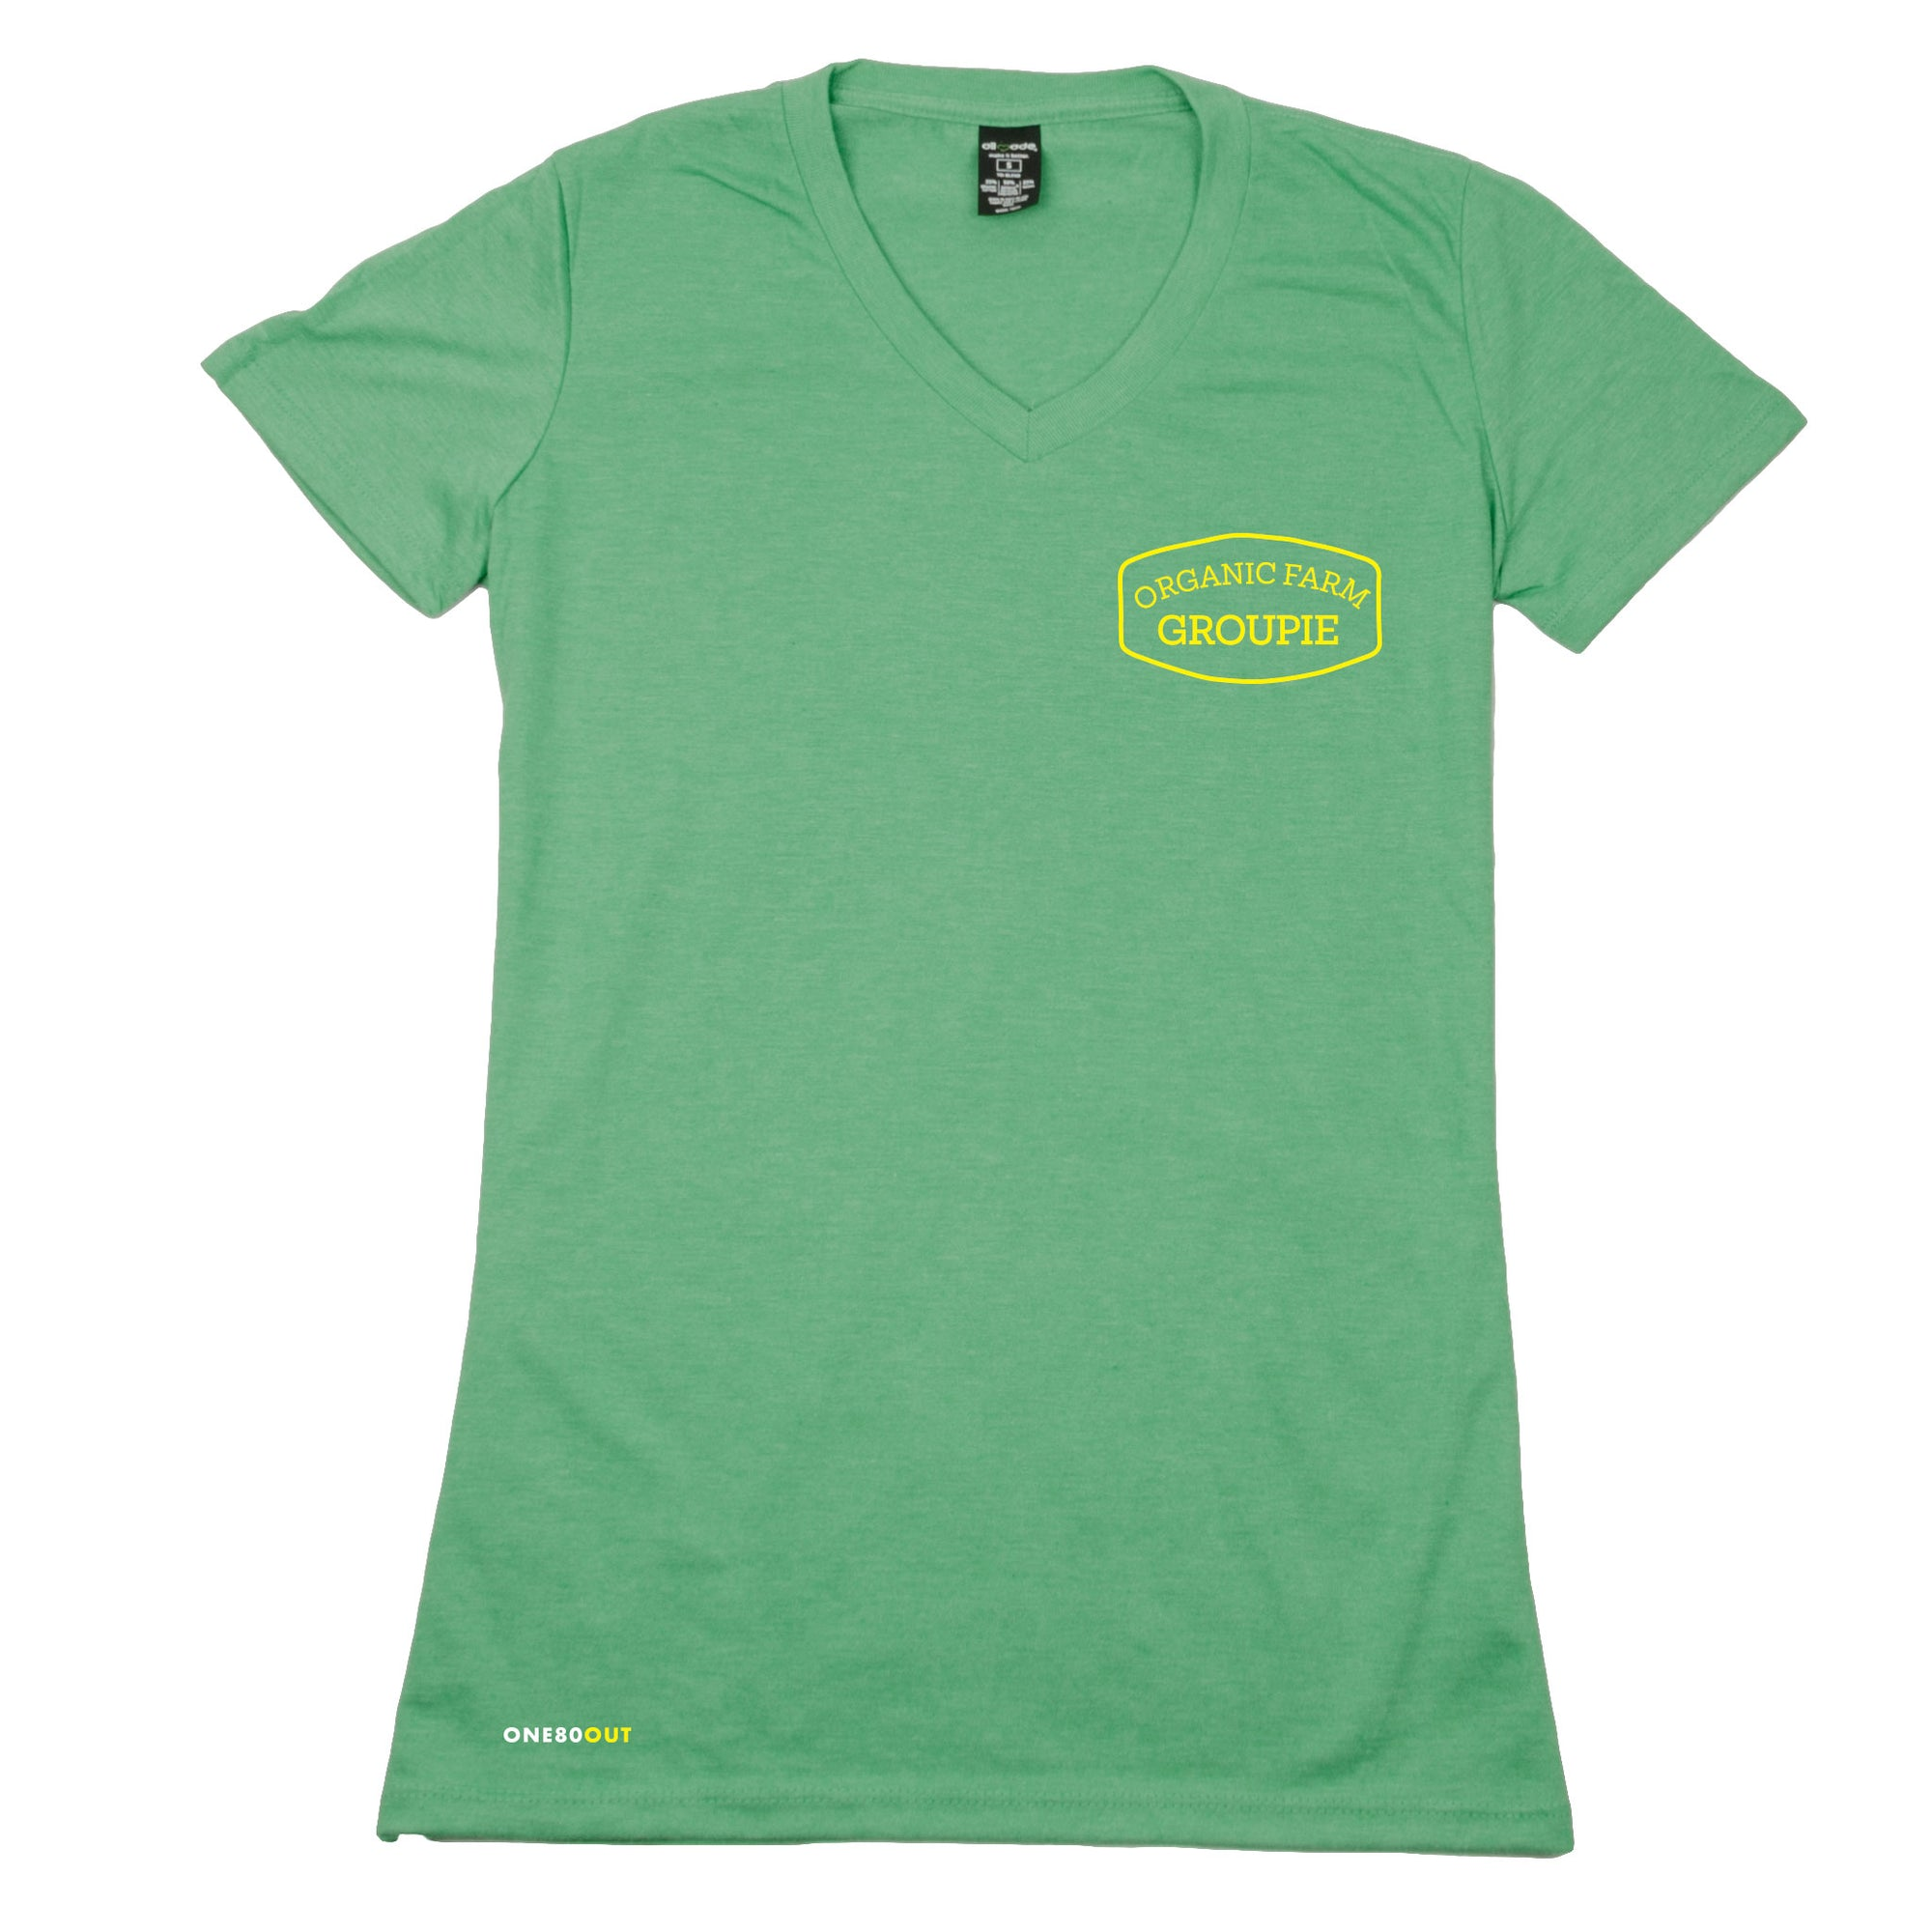 Women's Organic Farm Groupie T-Shirt